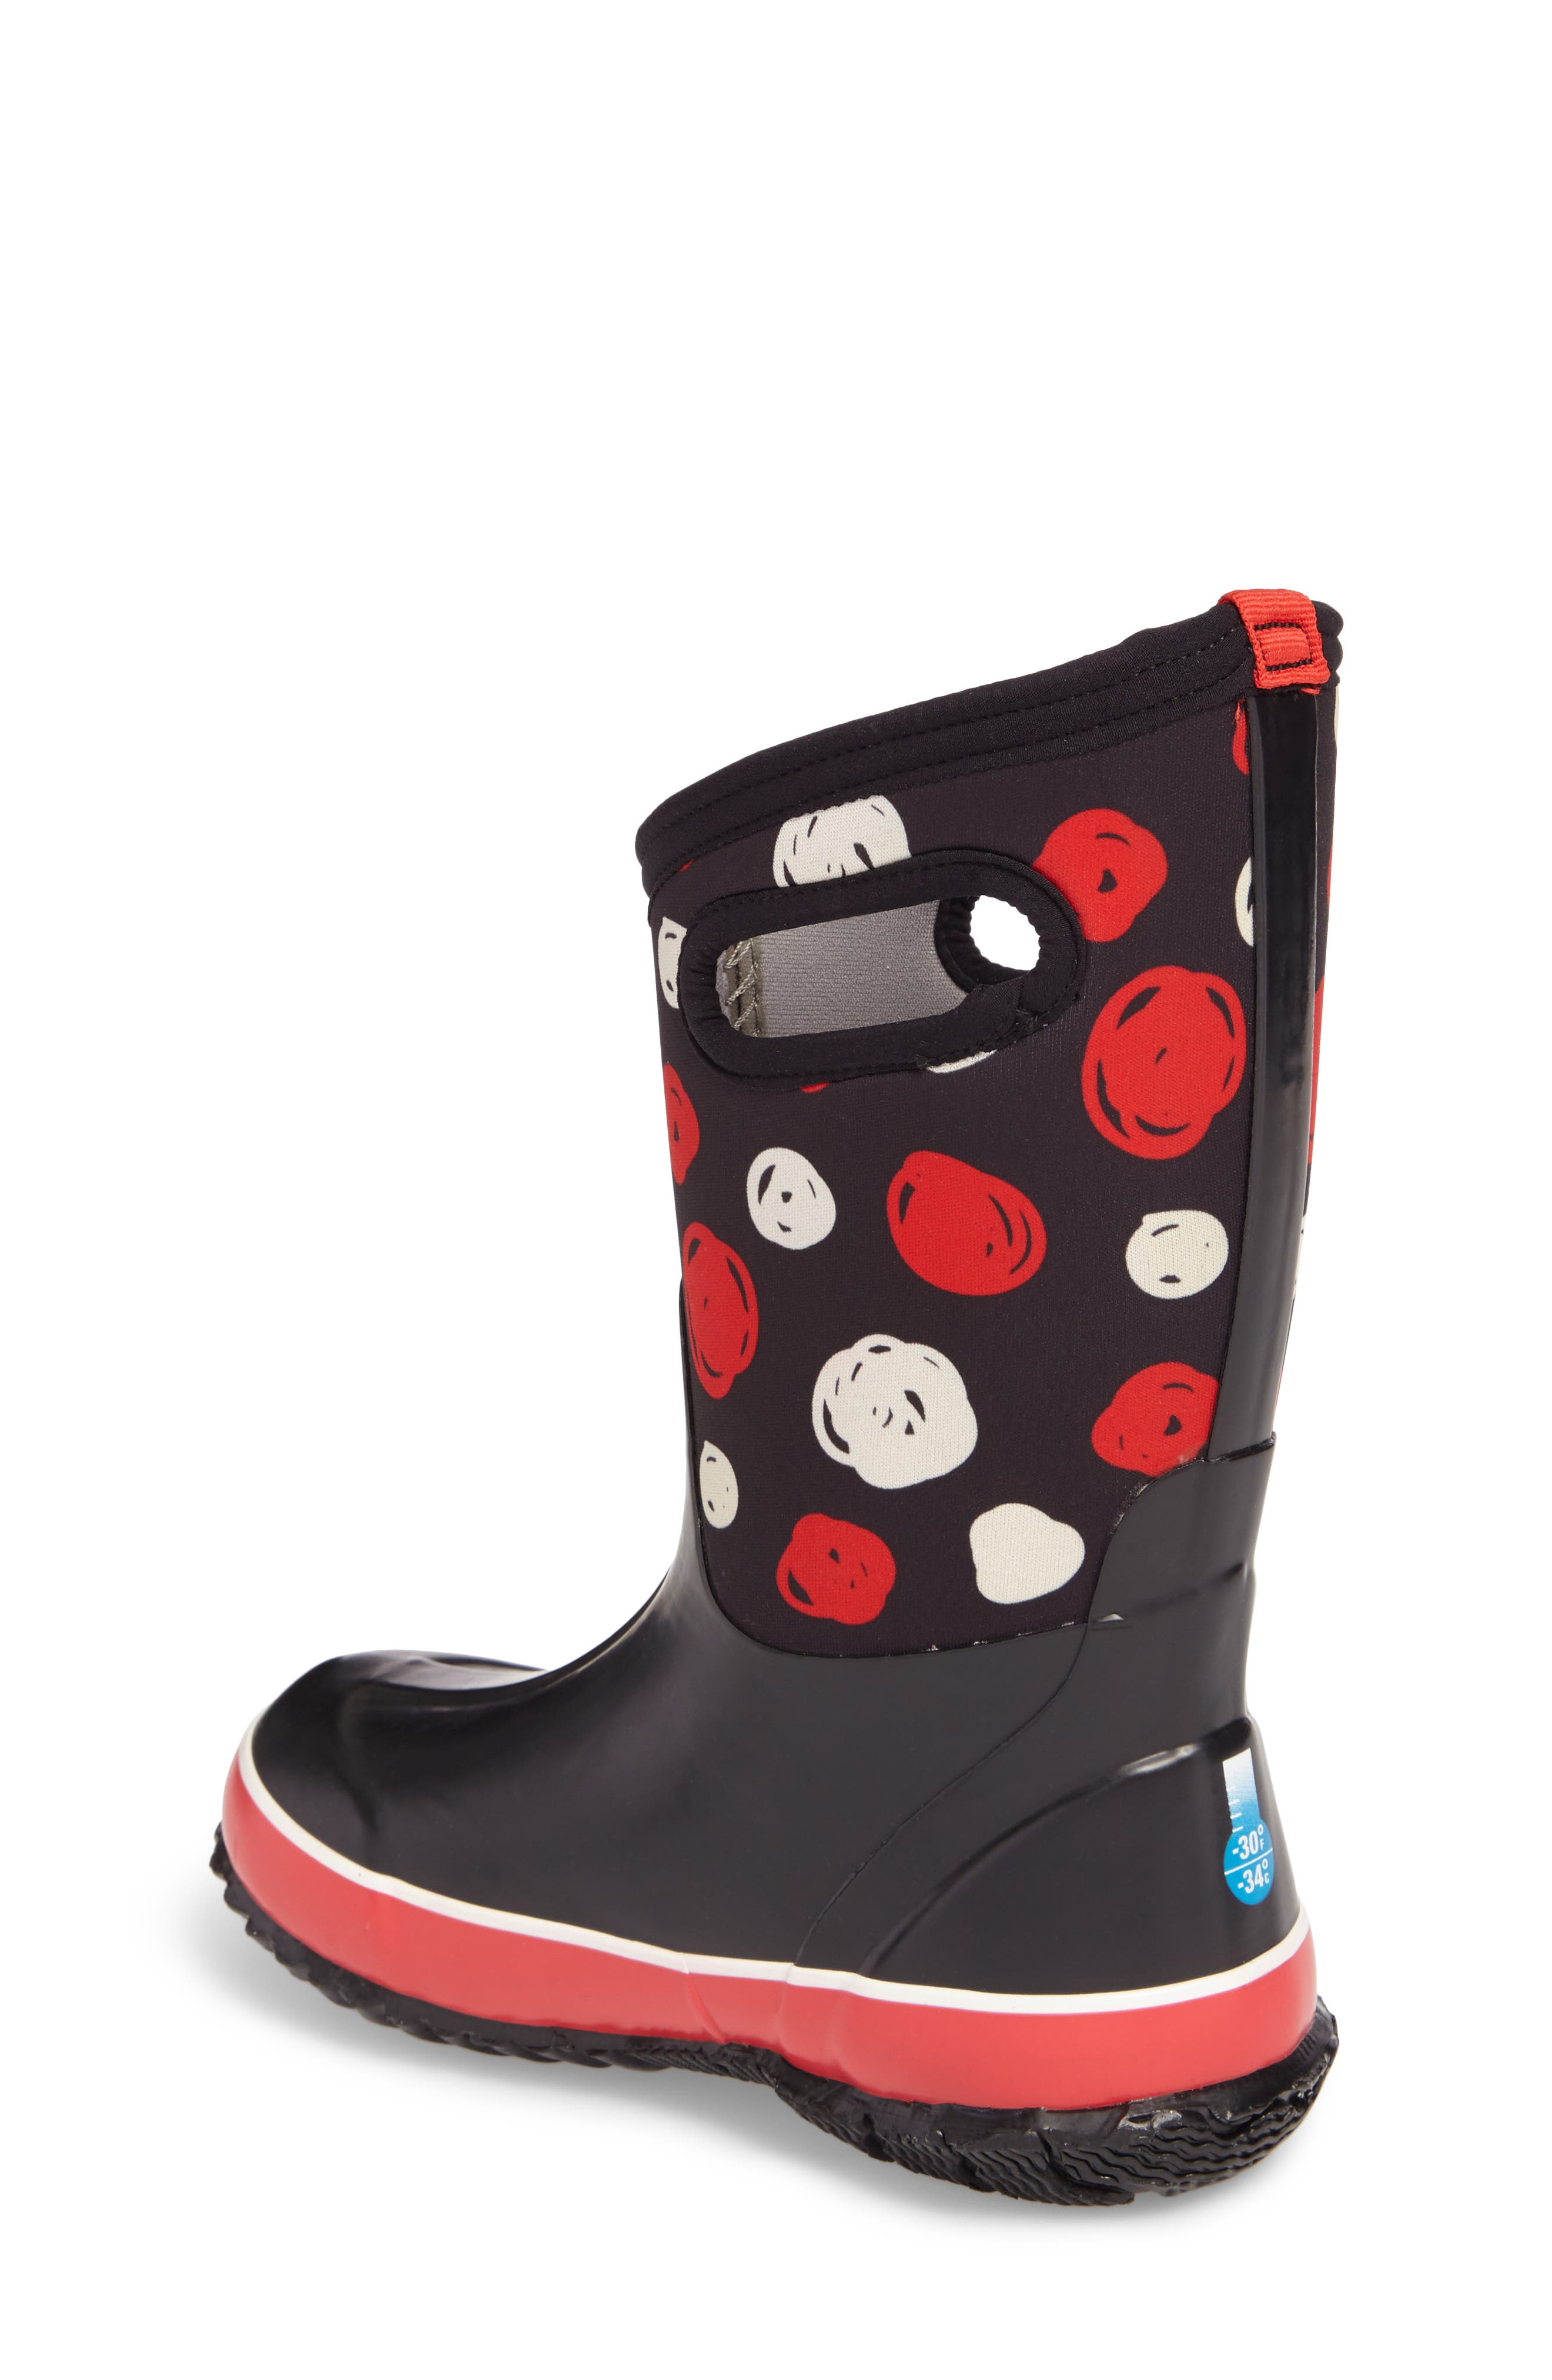 Alternate Image 2  - Bogs Classic Sketched Dots Insulated Waterproof Boot (Walker, Toddler, Little Kid & Big Kid)